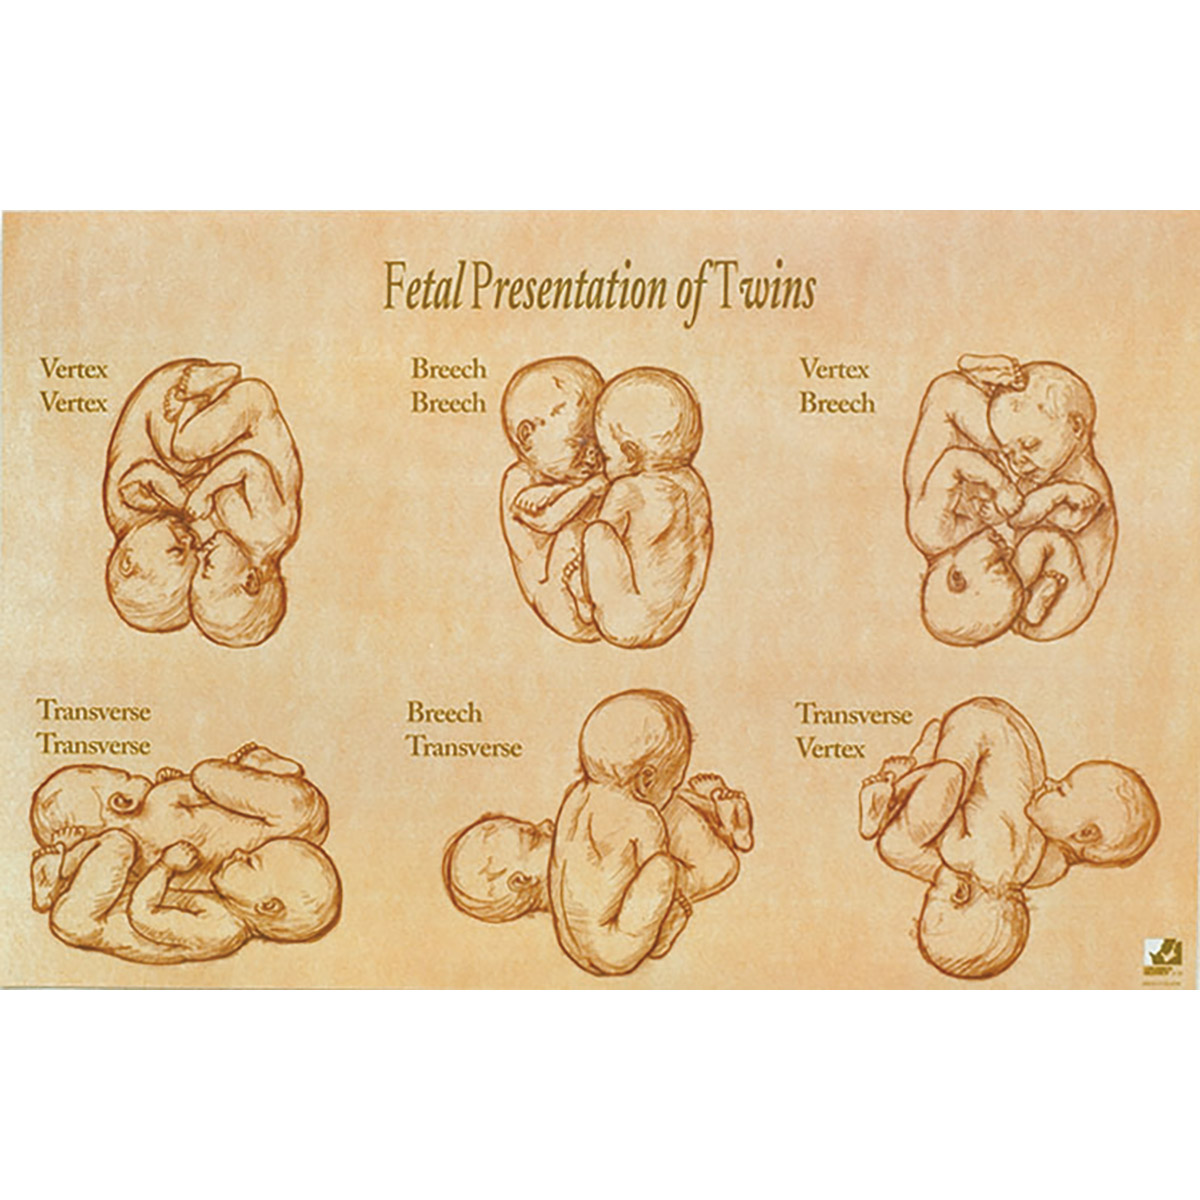 Fetal Development & Presentation of Twins Chart